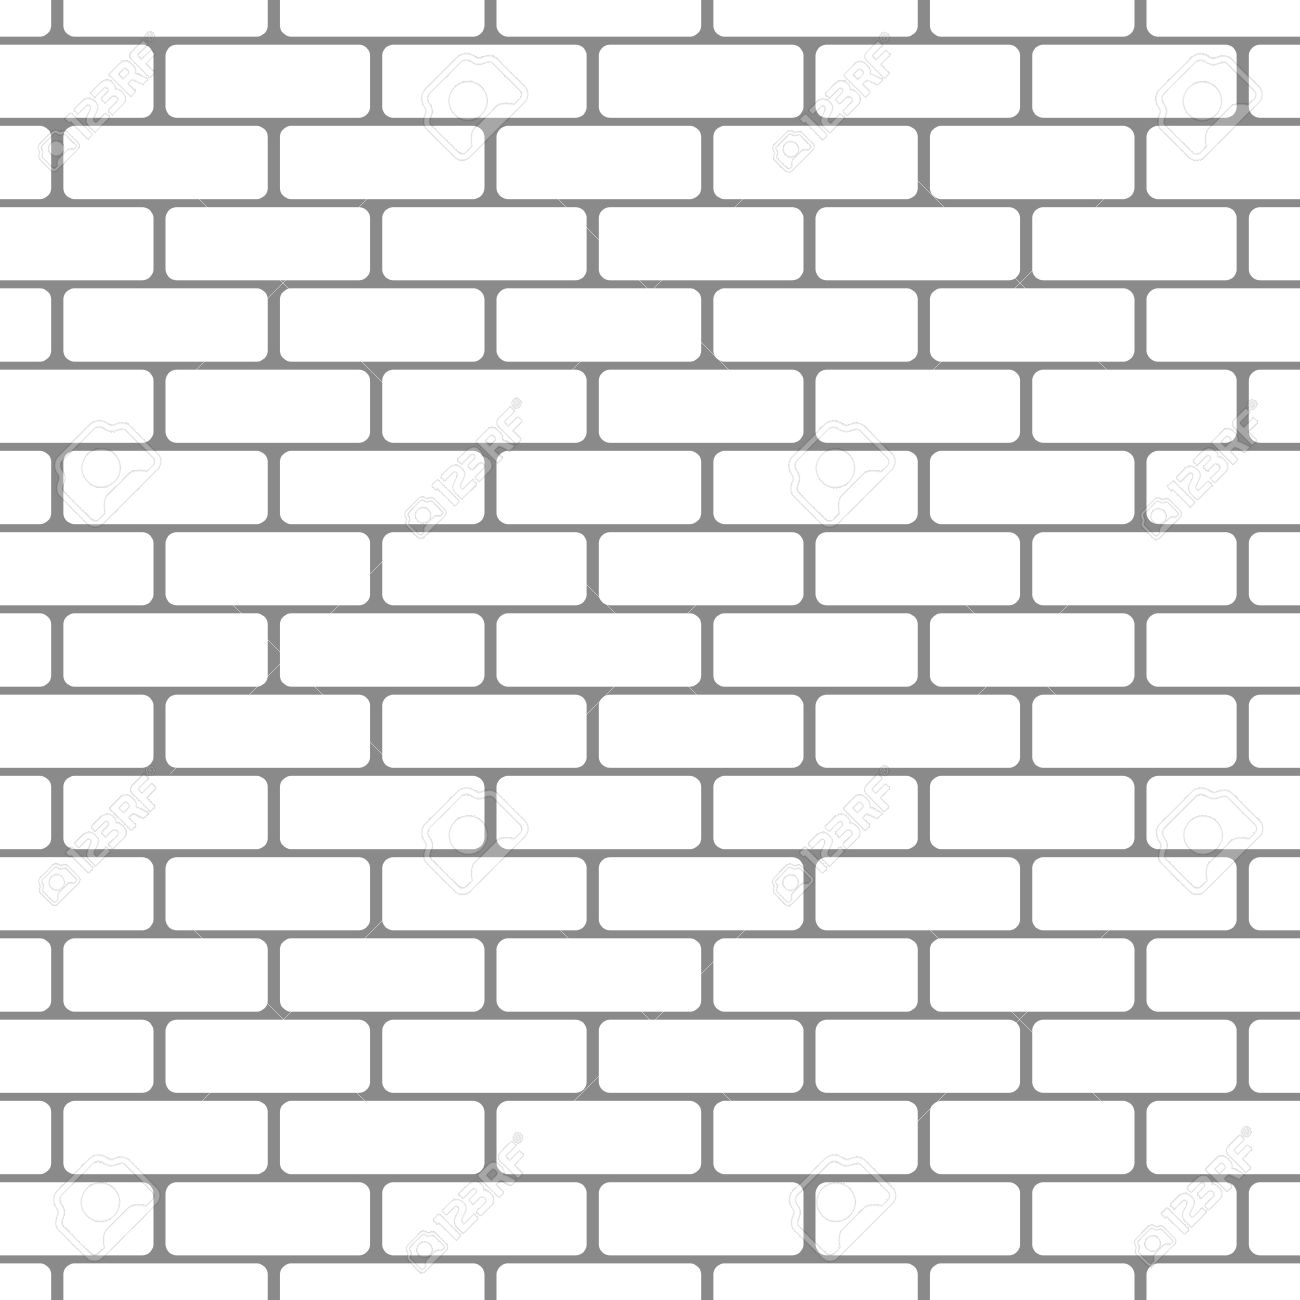 Brick clipart black and white. Wall foyer exterior station